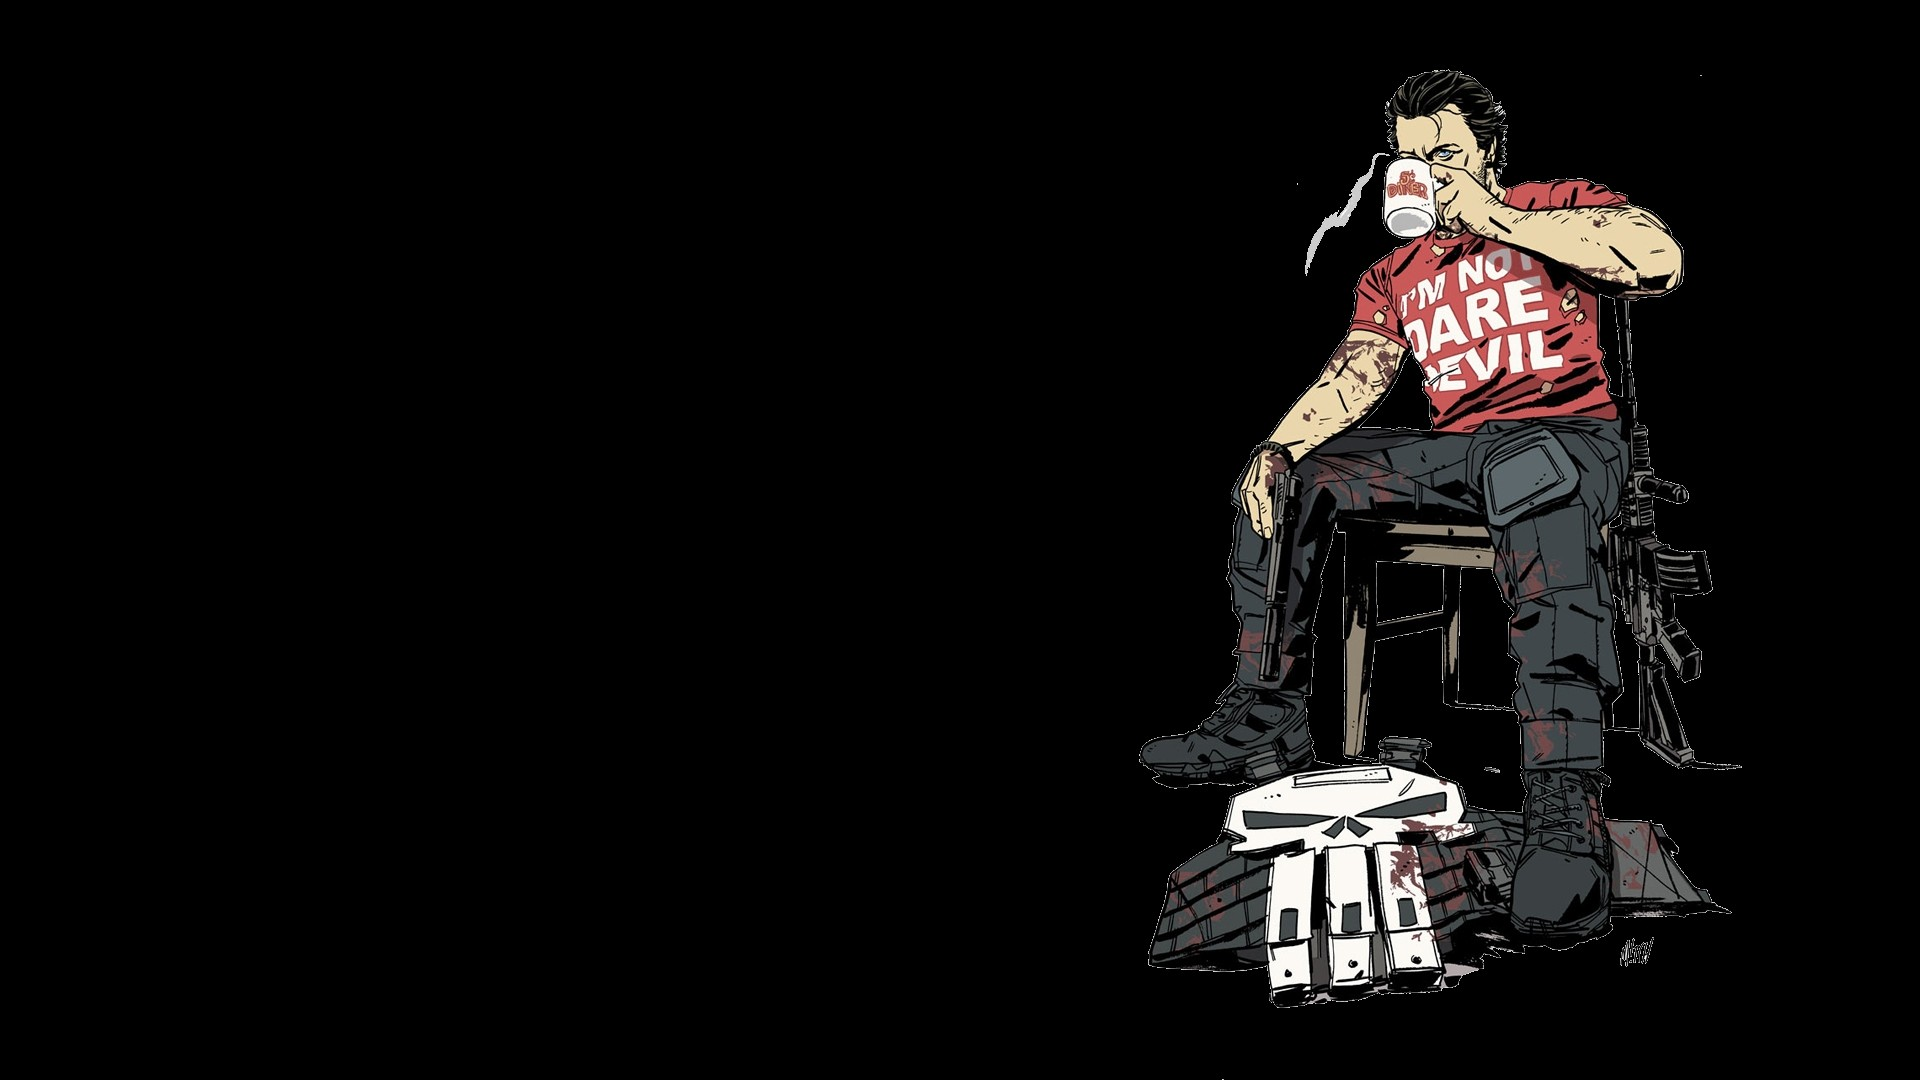 The Punisher Wallpaper Download Free Amazing Full Hd